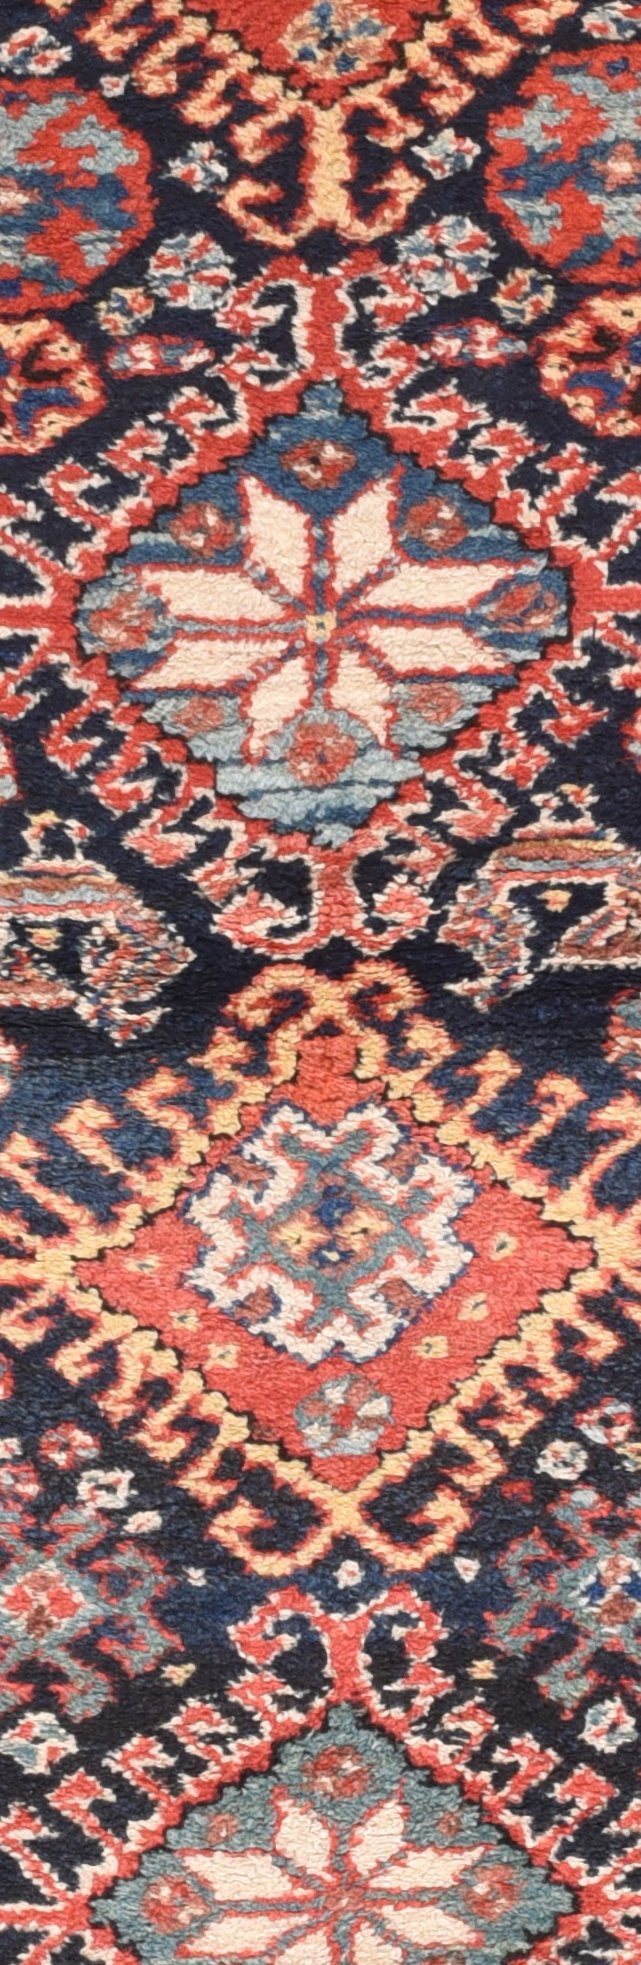 Antique Lori Tribal Persian Area Rug